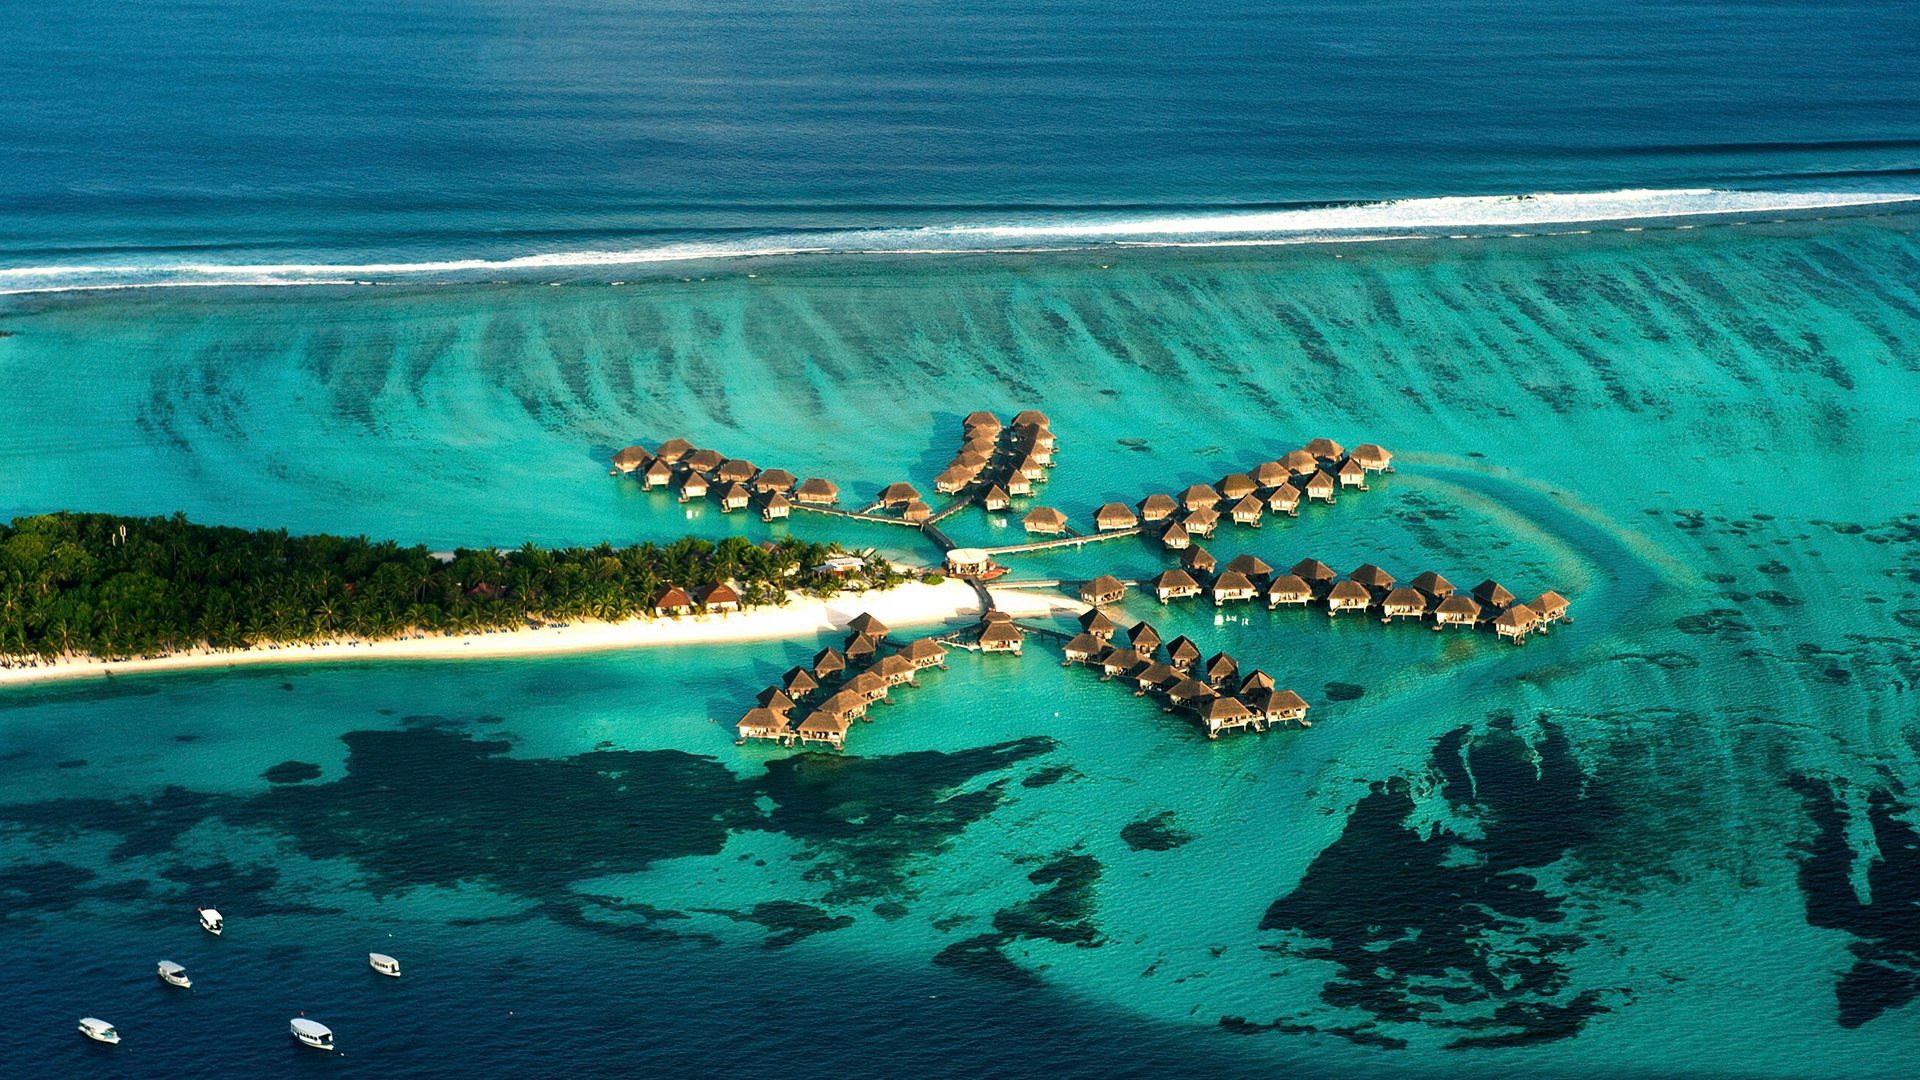 Visit Maldives launches campaign with e-commerce giant Amazon India